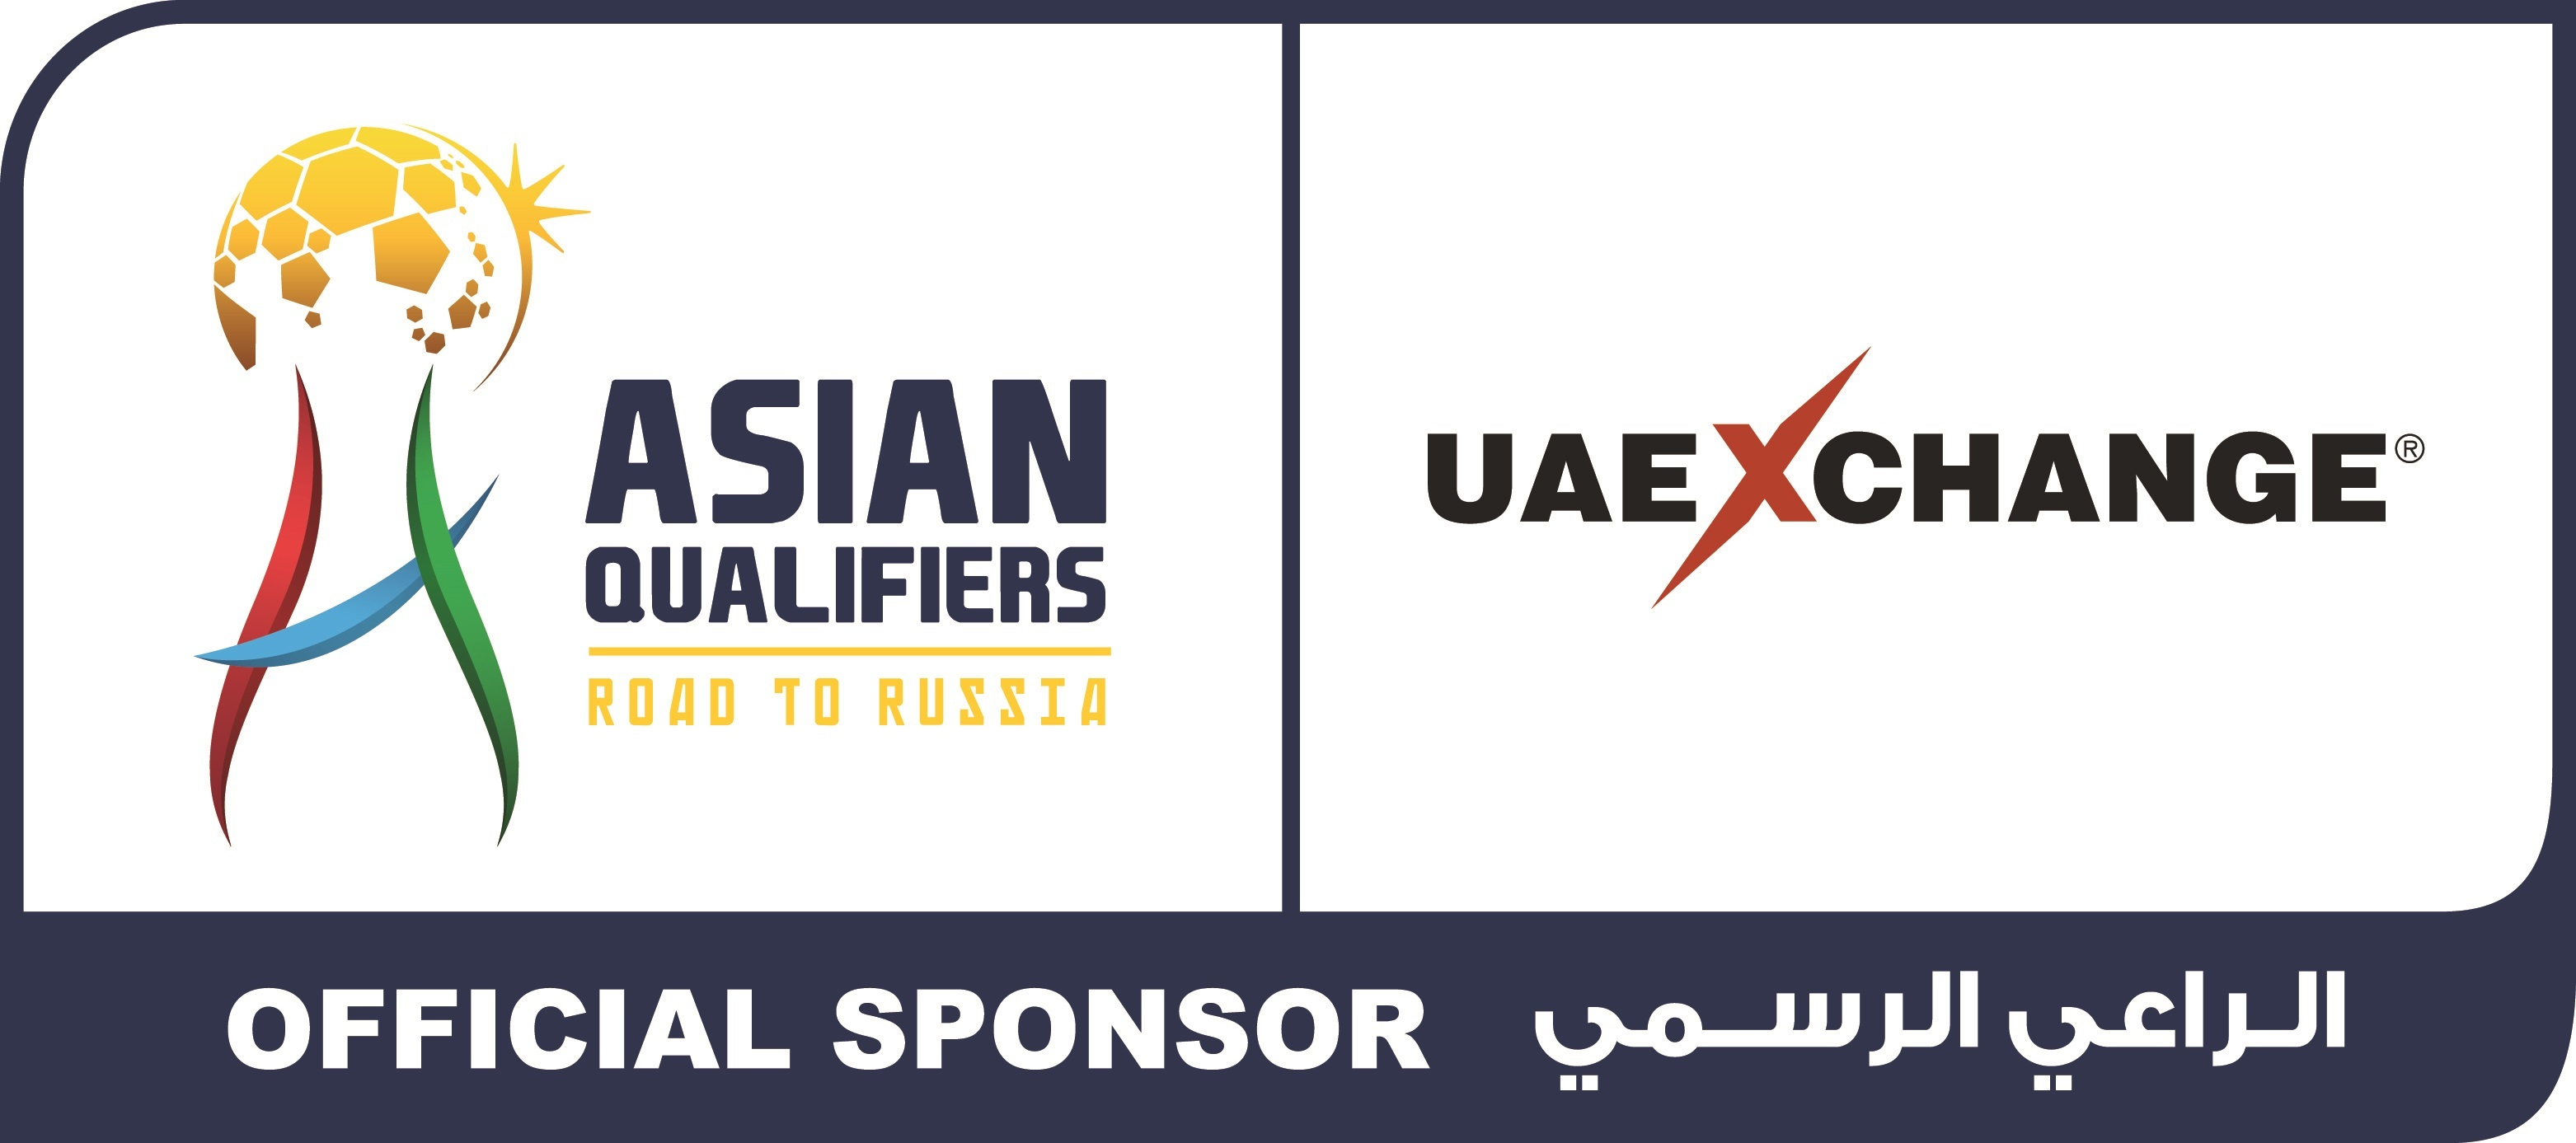 UAE Exchange Associates With The Asian Football Confederation As